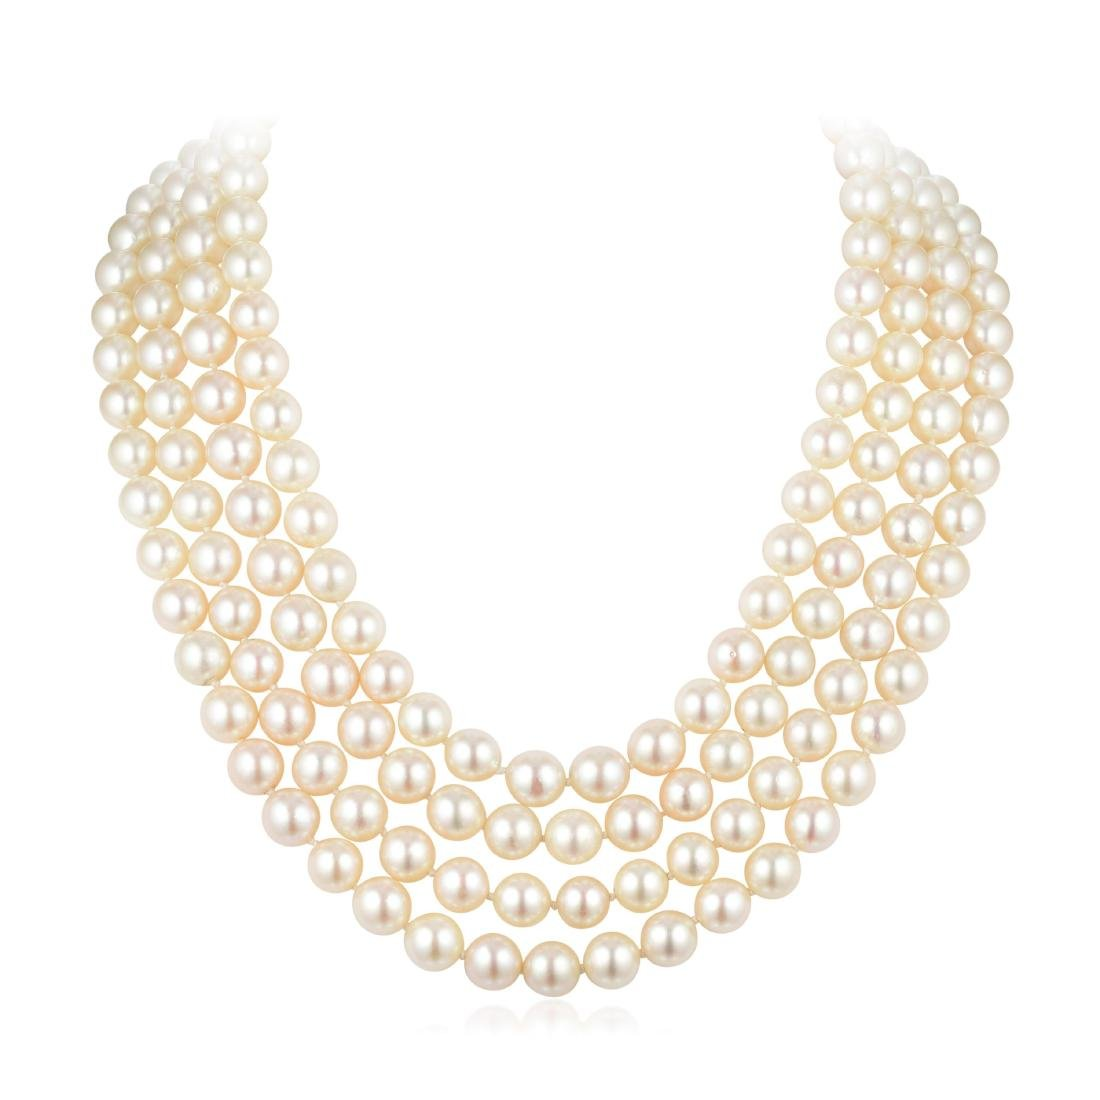 A Four-Strand Cultured Pearl Necklace with 18K White